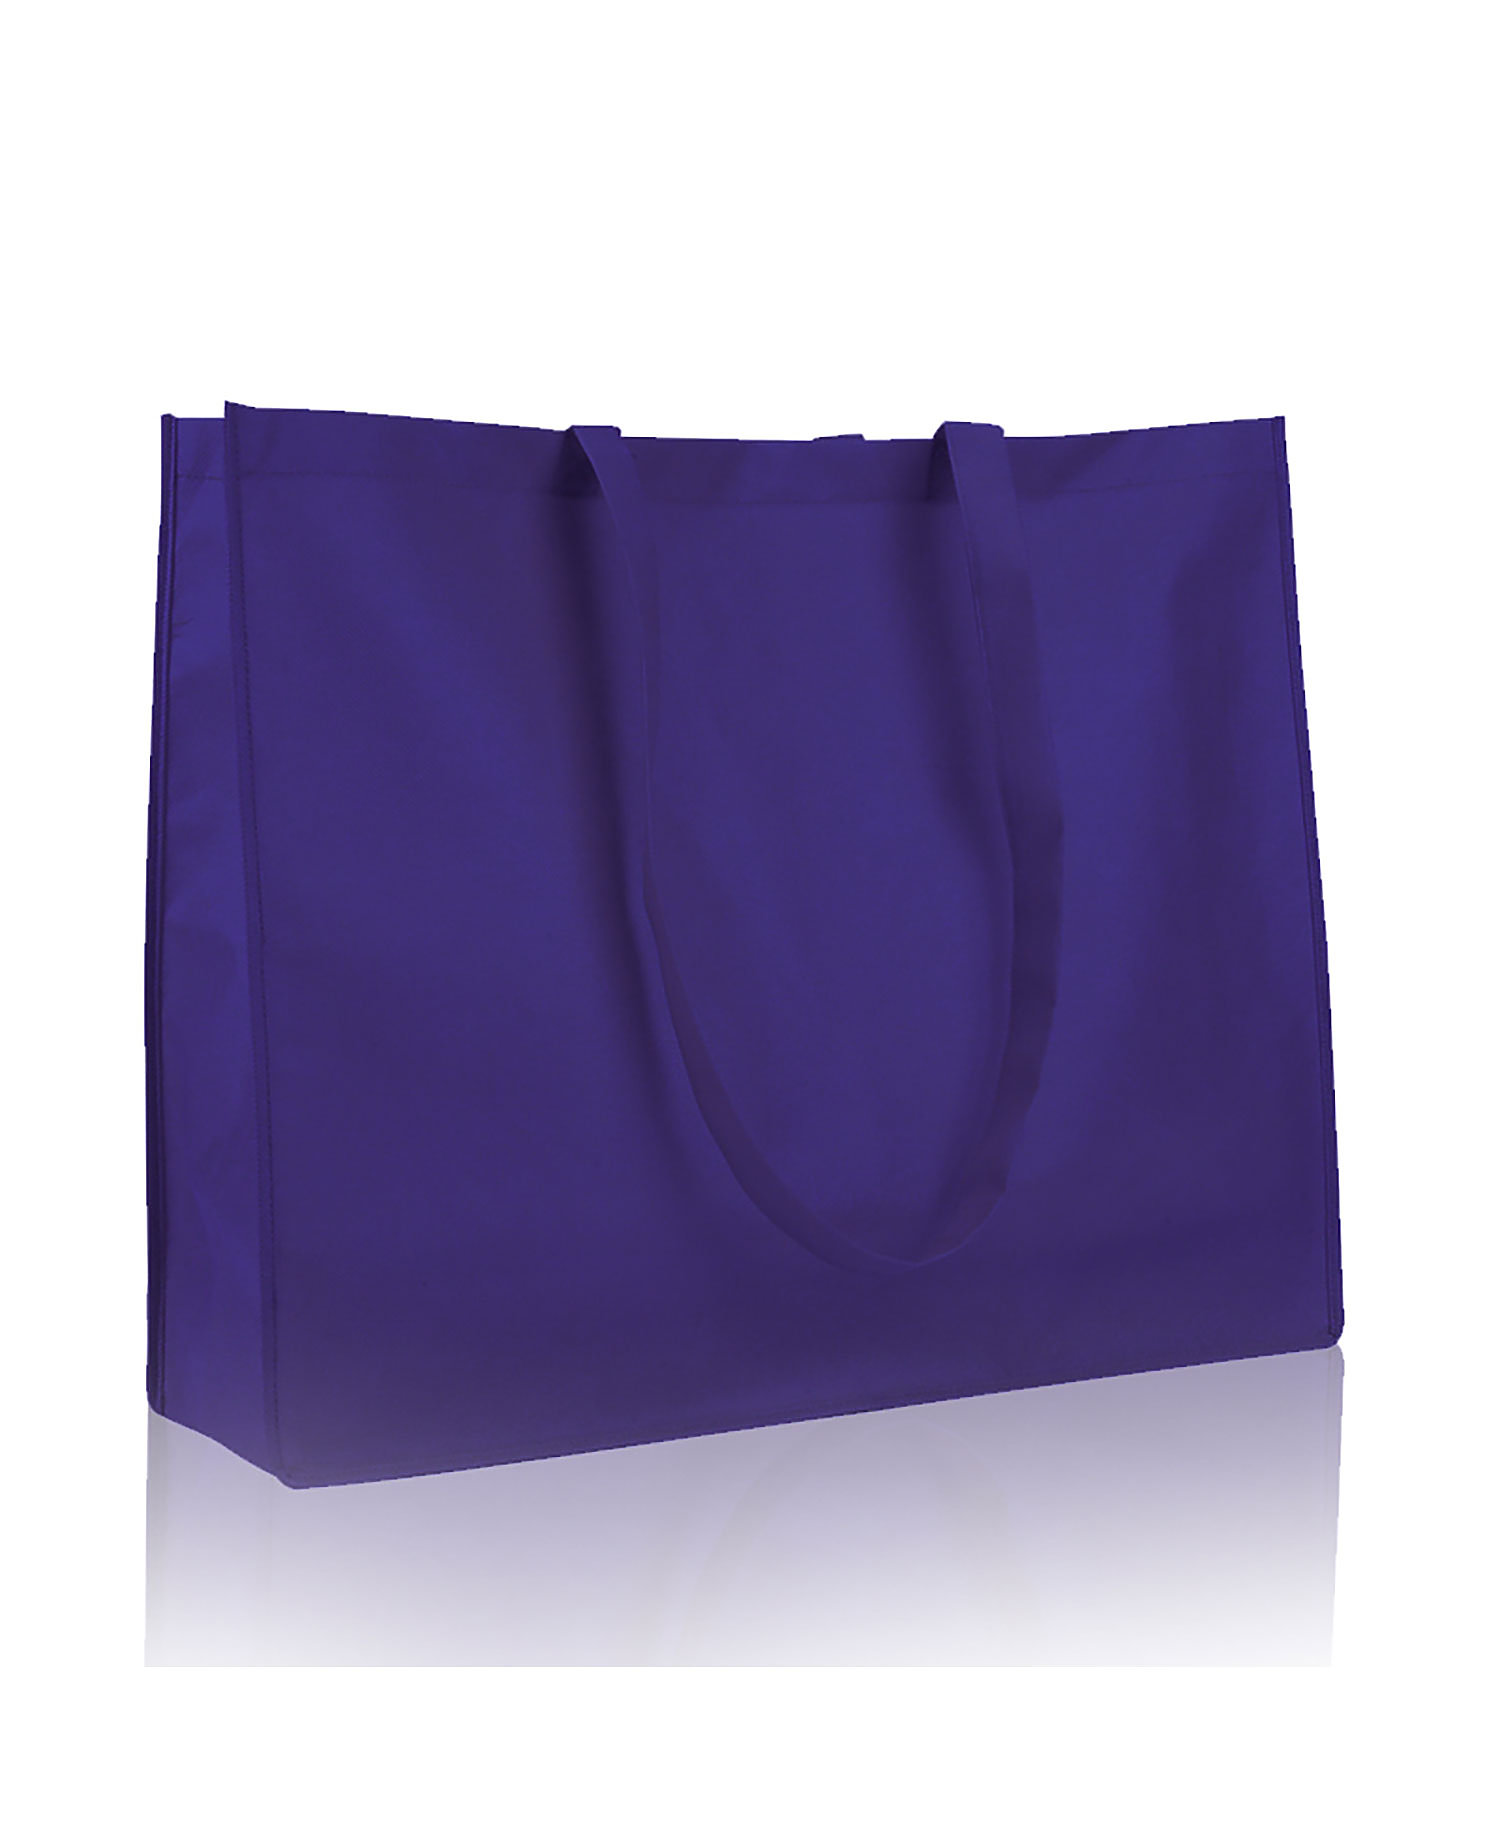 Q-Tees Q126600 - Large Non Woven Tote Bag